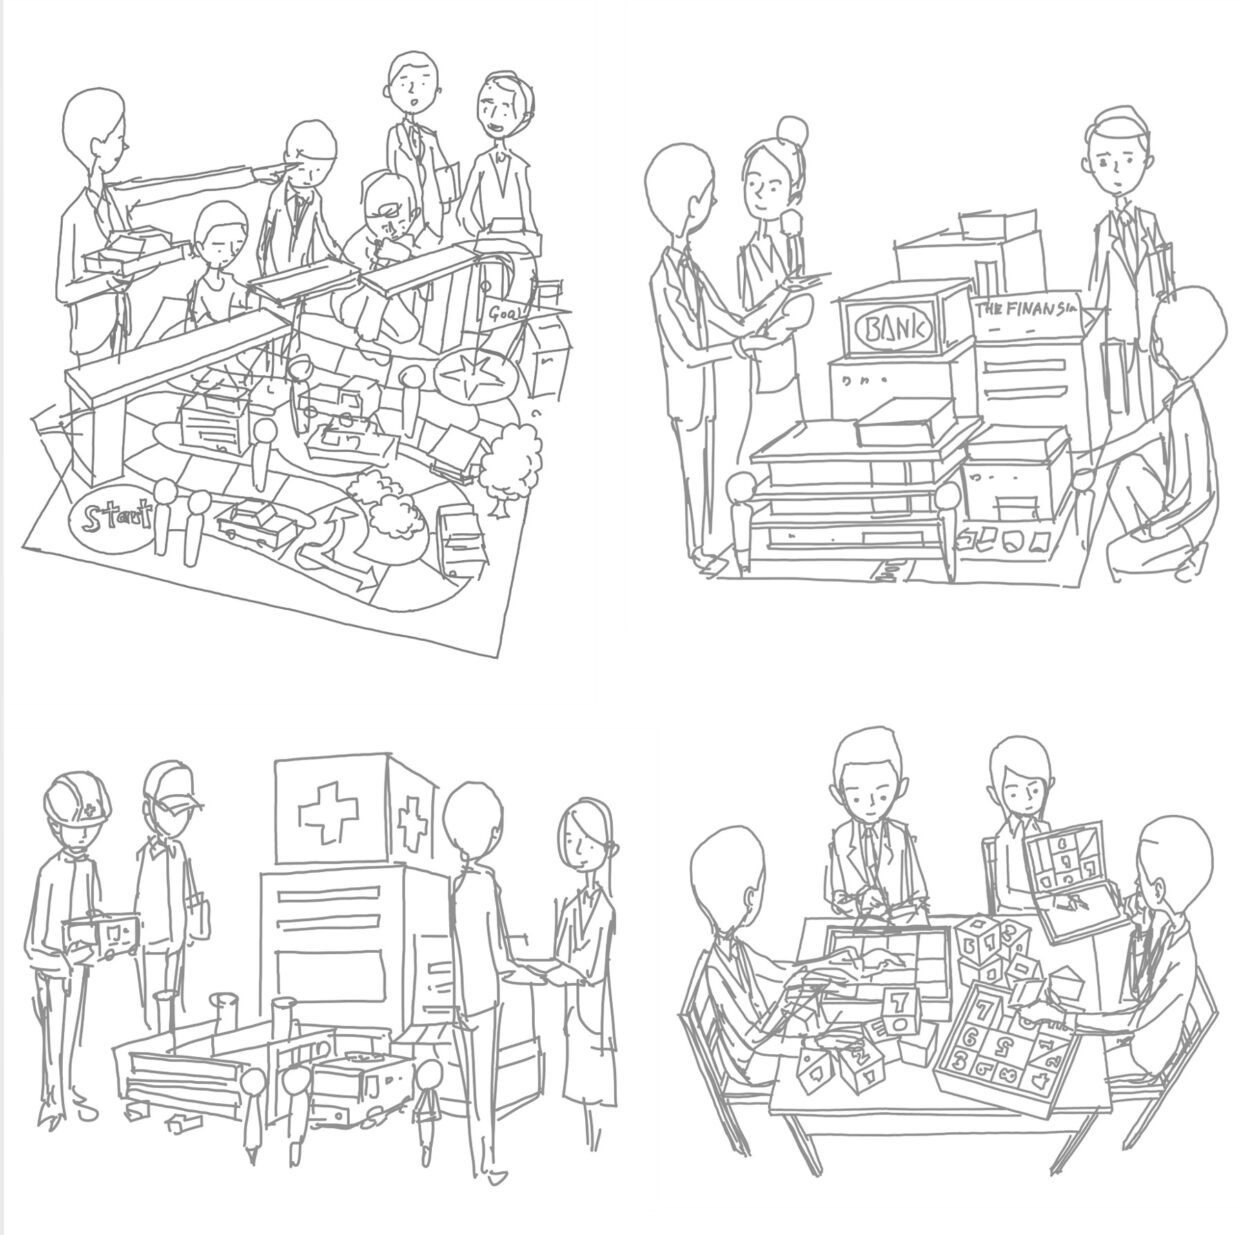 character images sketches 04